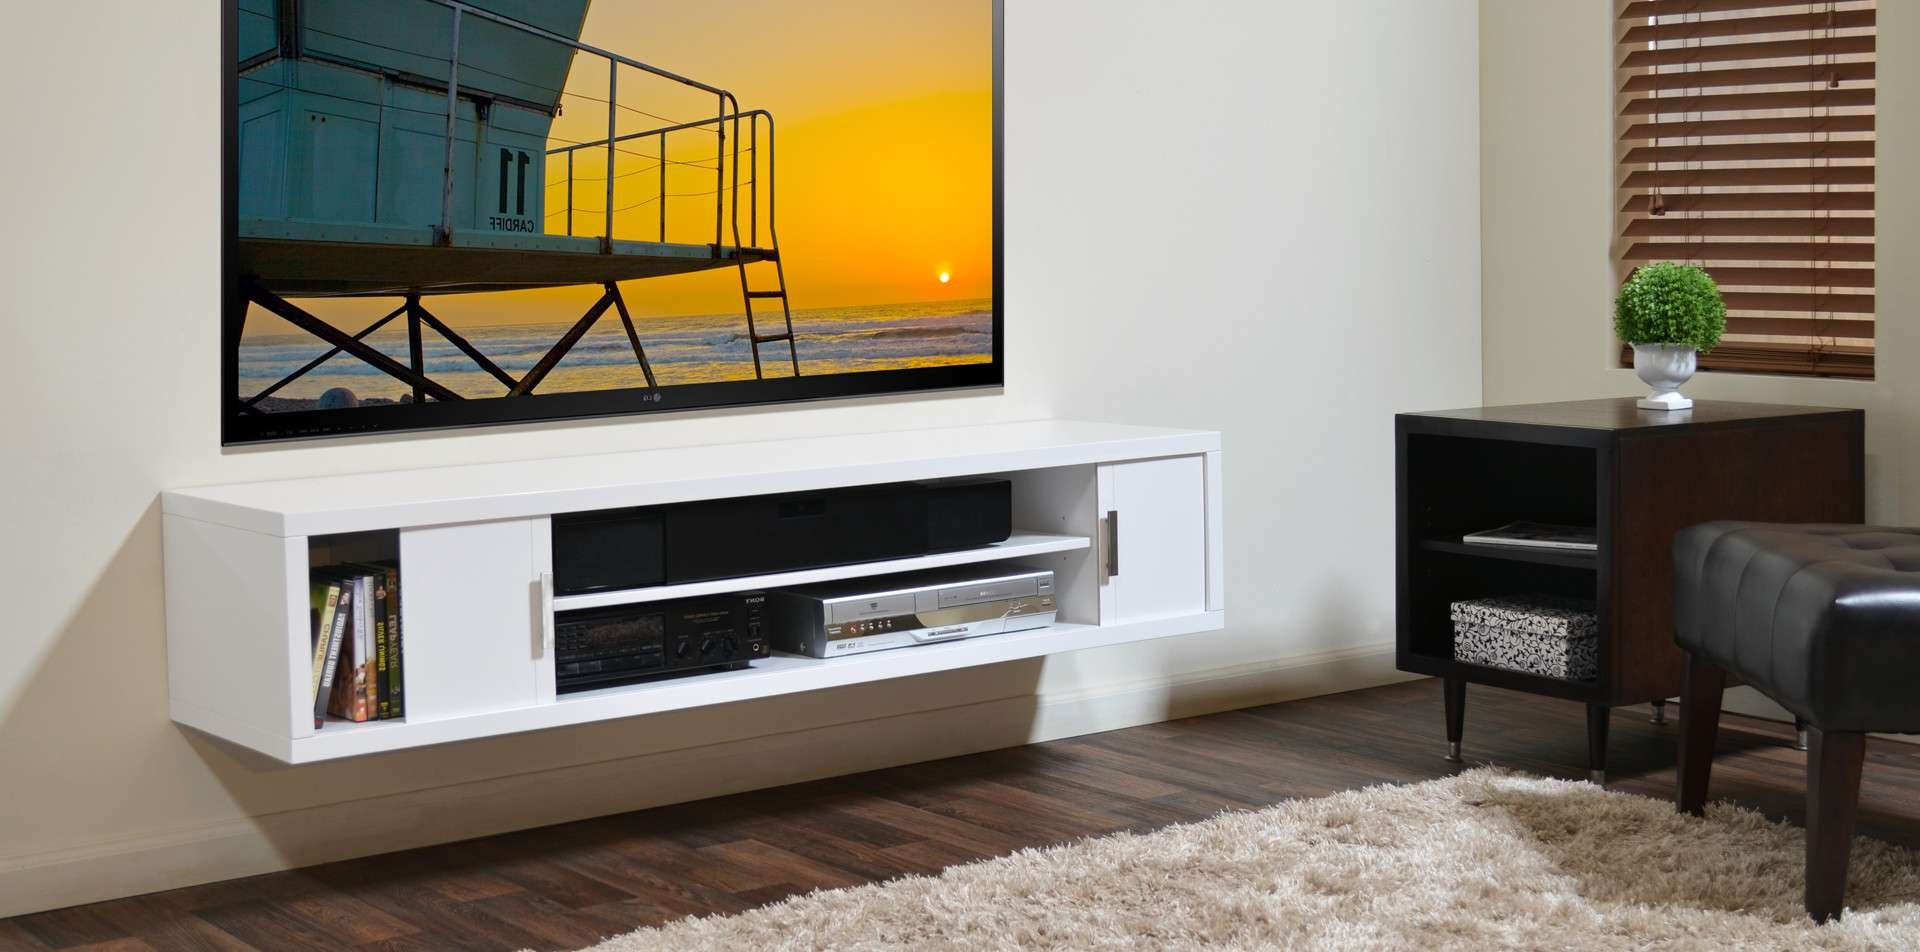 Long Wood Wall Mounted Media Shelf And Cabinet Tv Stand – Decofurnish Inside Single Shelf Tv Stands (View 7 of 15)